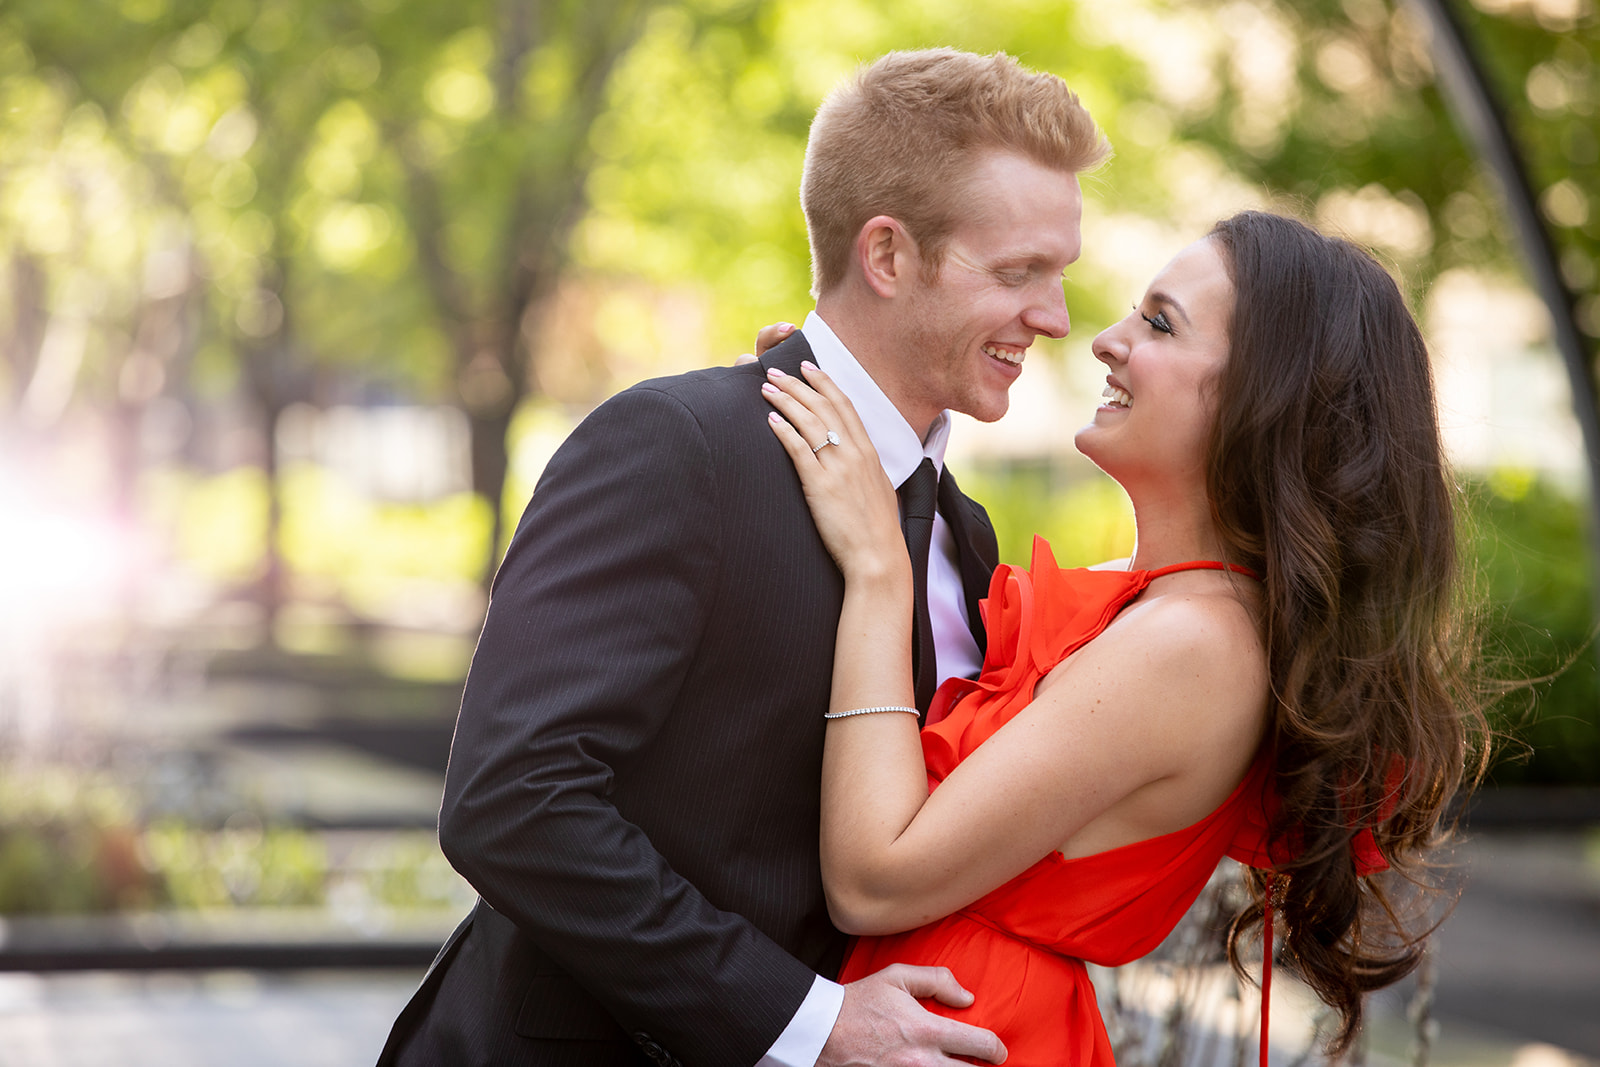 Chicago engagement photo shoot e-session collin pierson photography bride to be in red dress laughing casual look into eyes